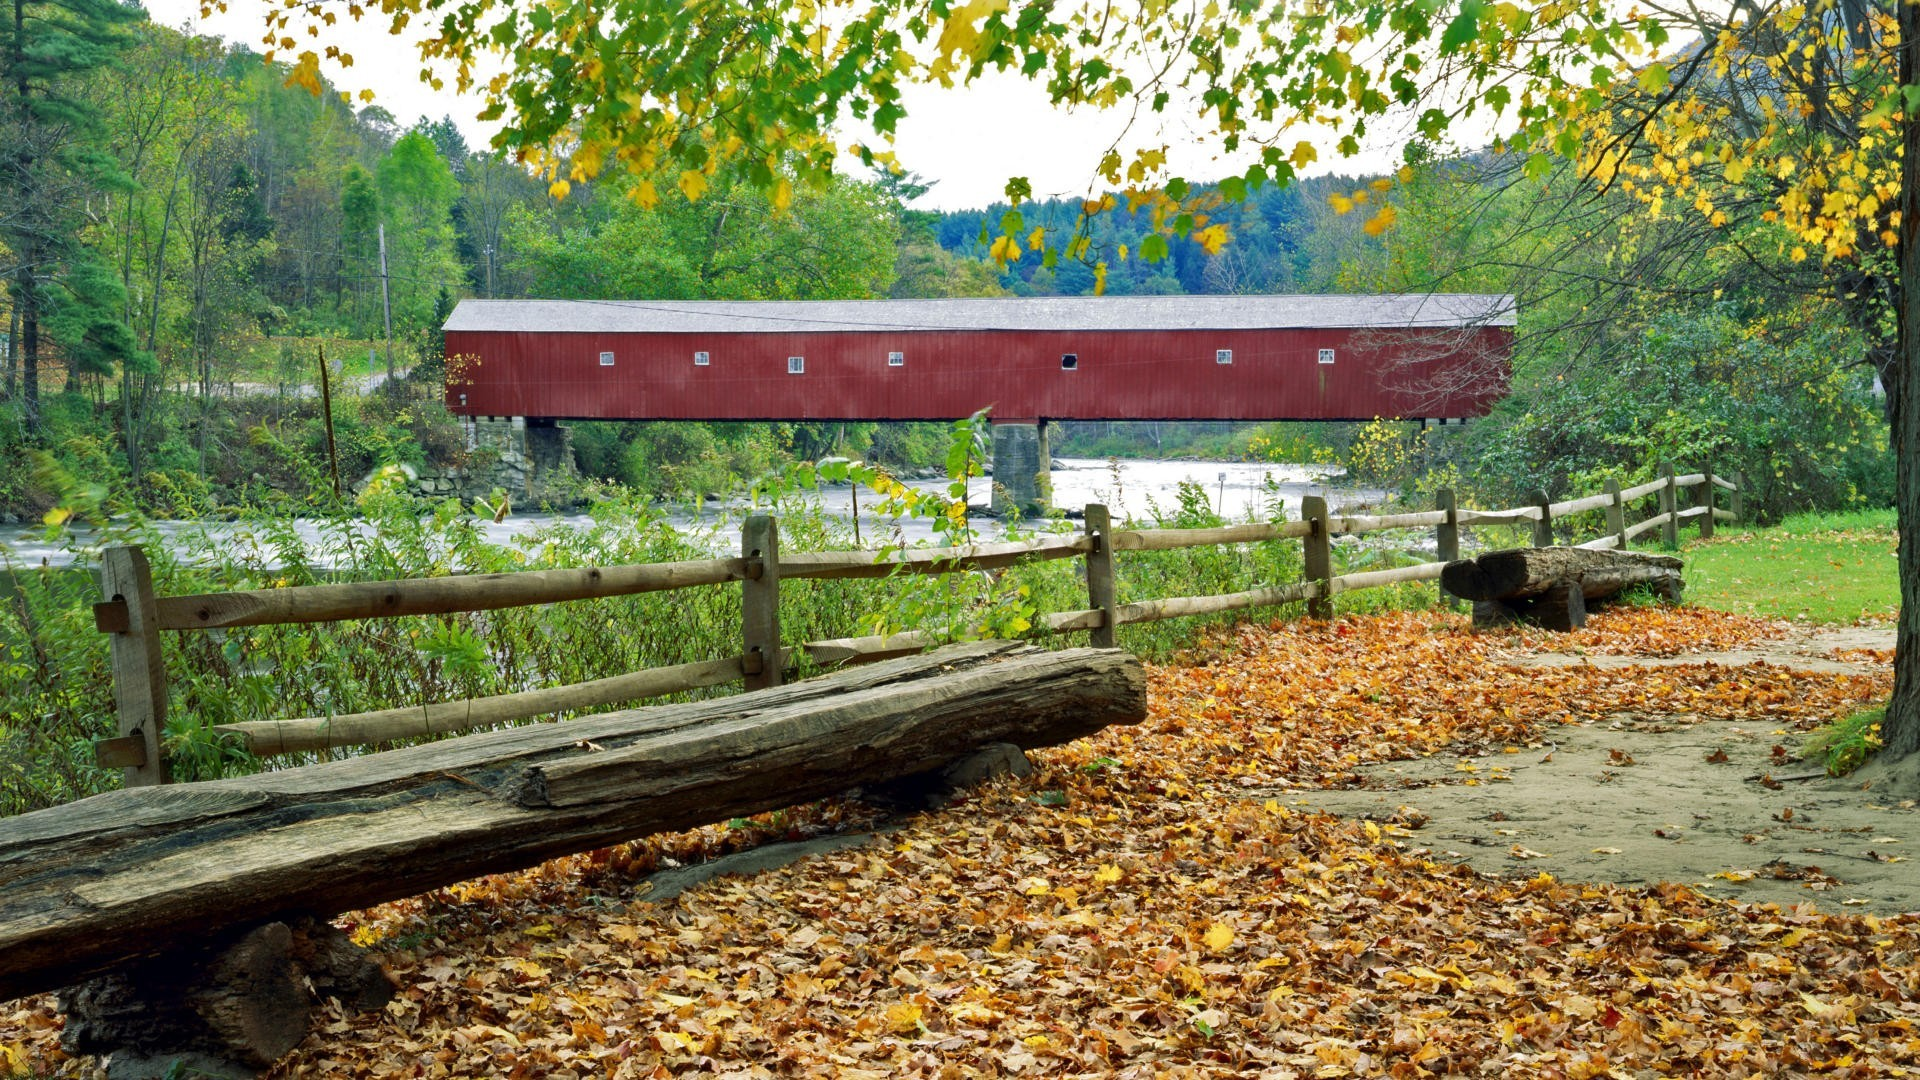 West Cornwall Covered Bridge Connecticut wallpaper 403396